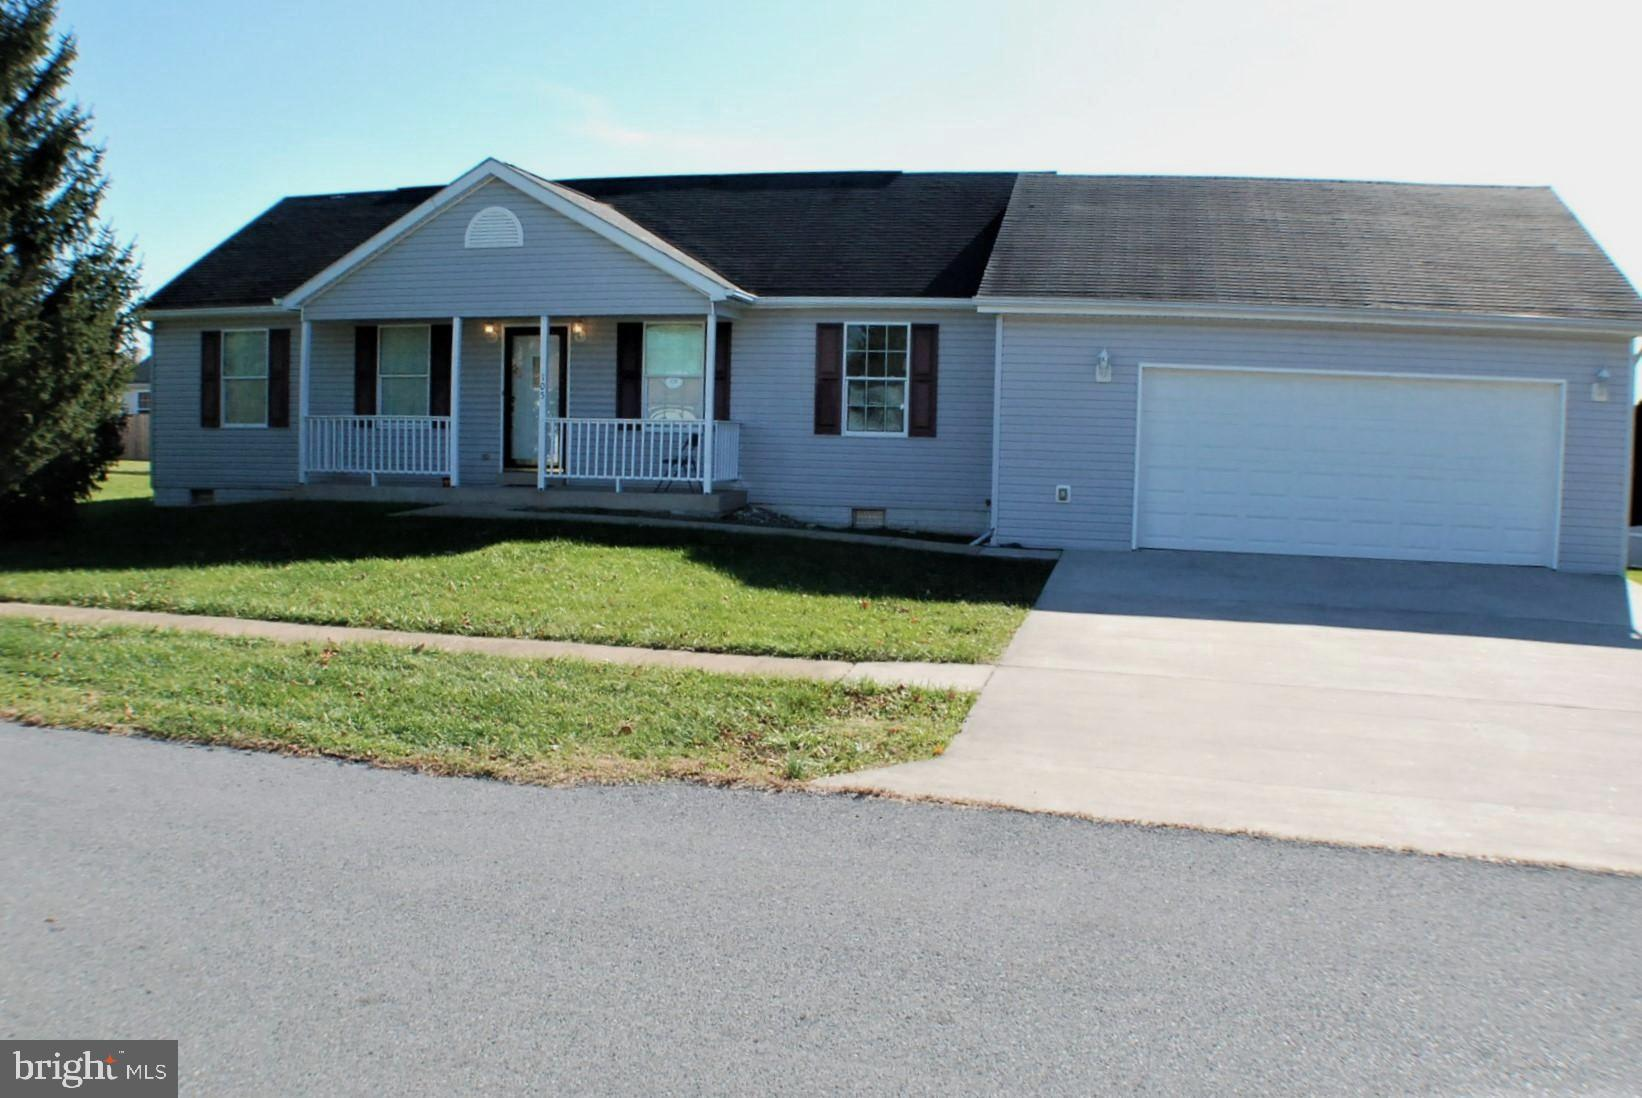 Move in Ready Rancher with Fresh Paint and Carpet . Large Private rear deck a great place torelax .